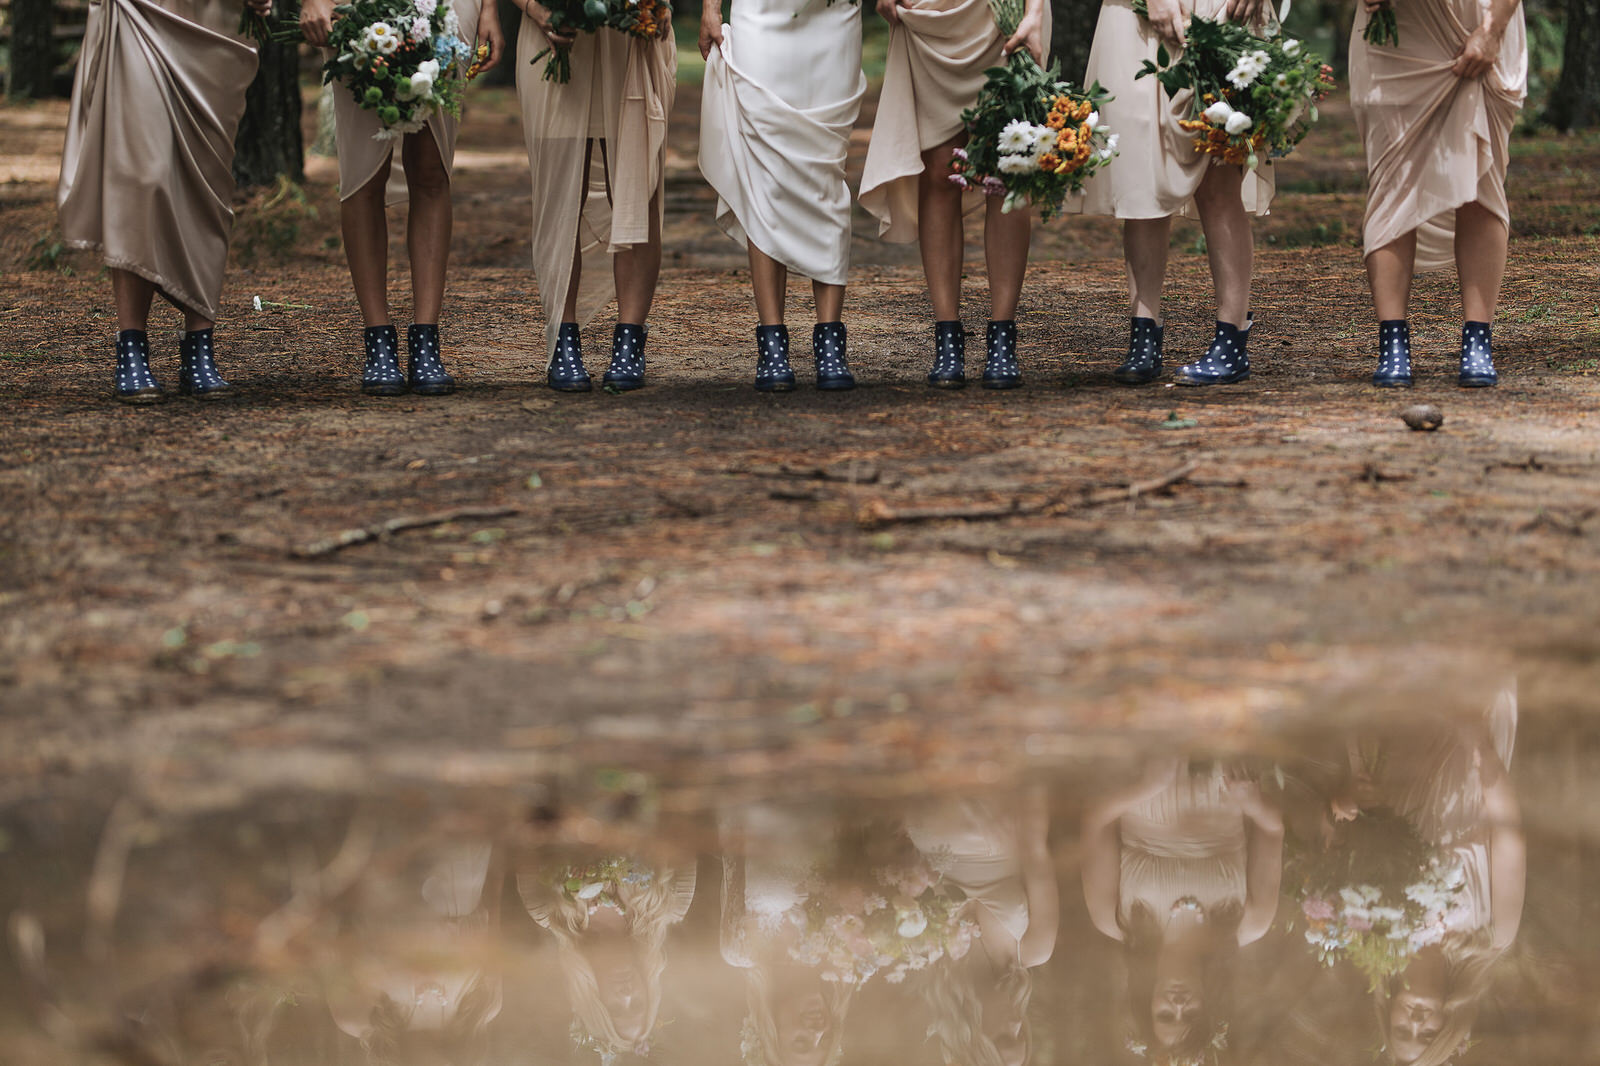 newfound-b-f-hunua-falls-camp-auckland-wedding-133.jpg